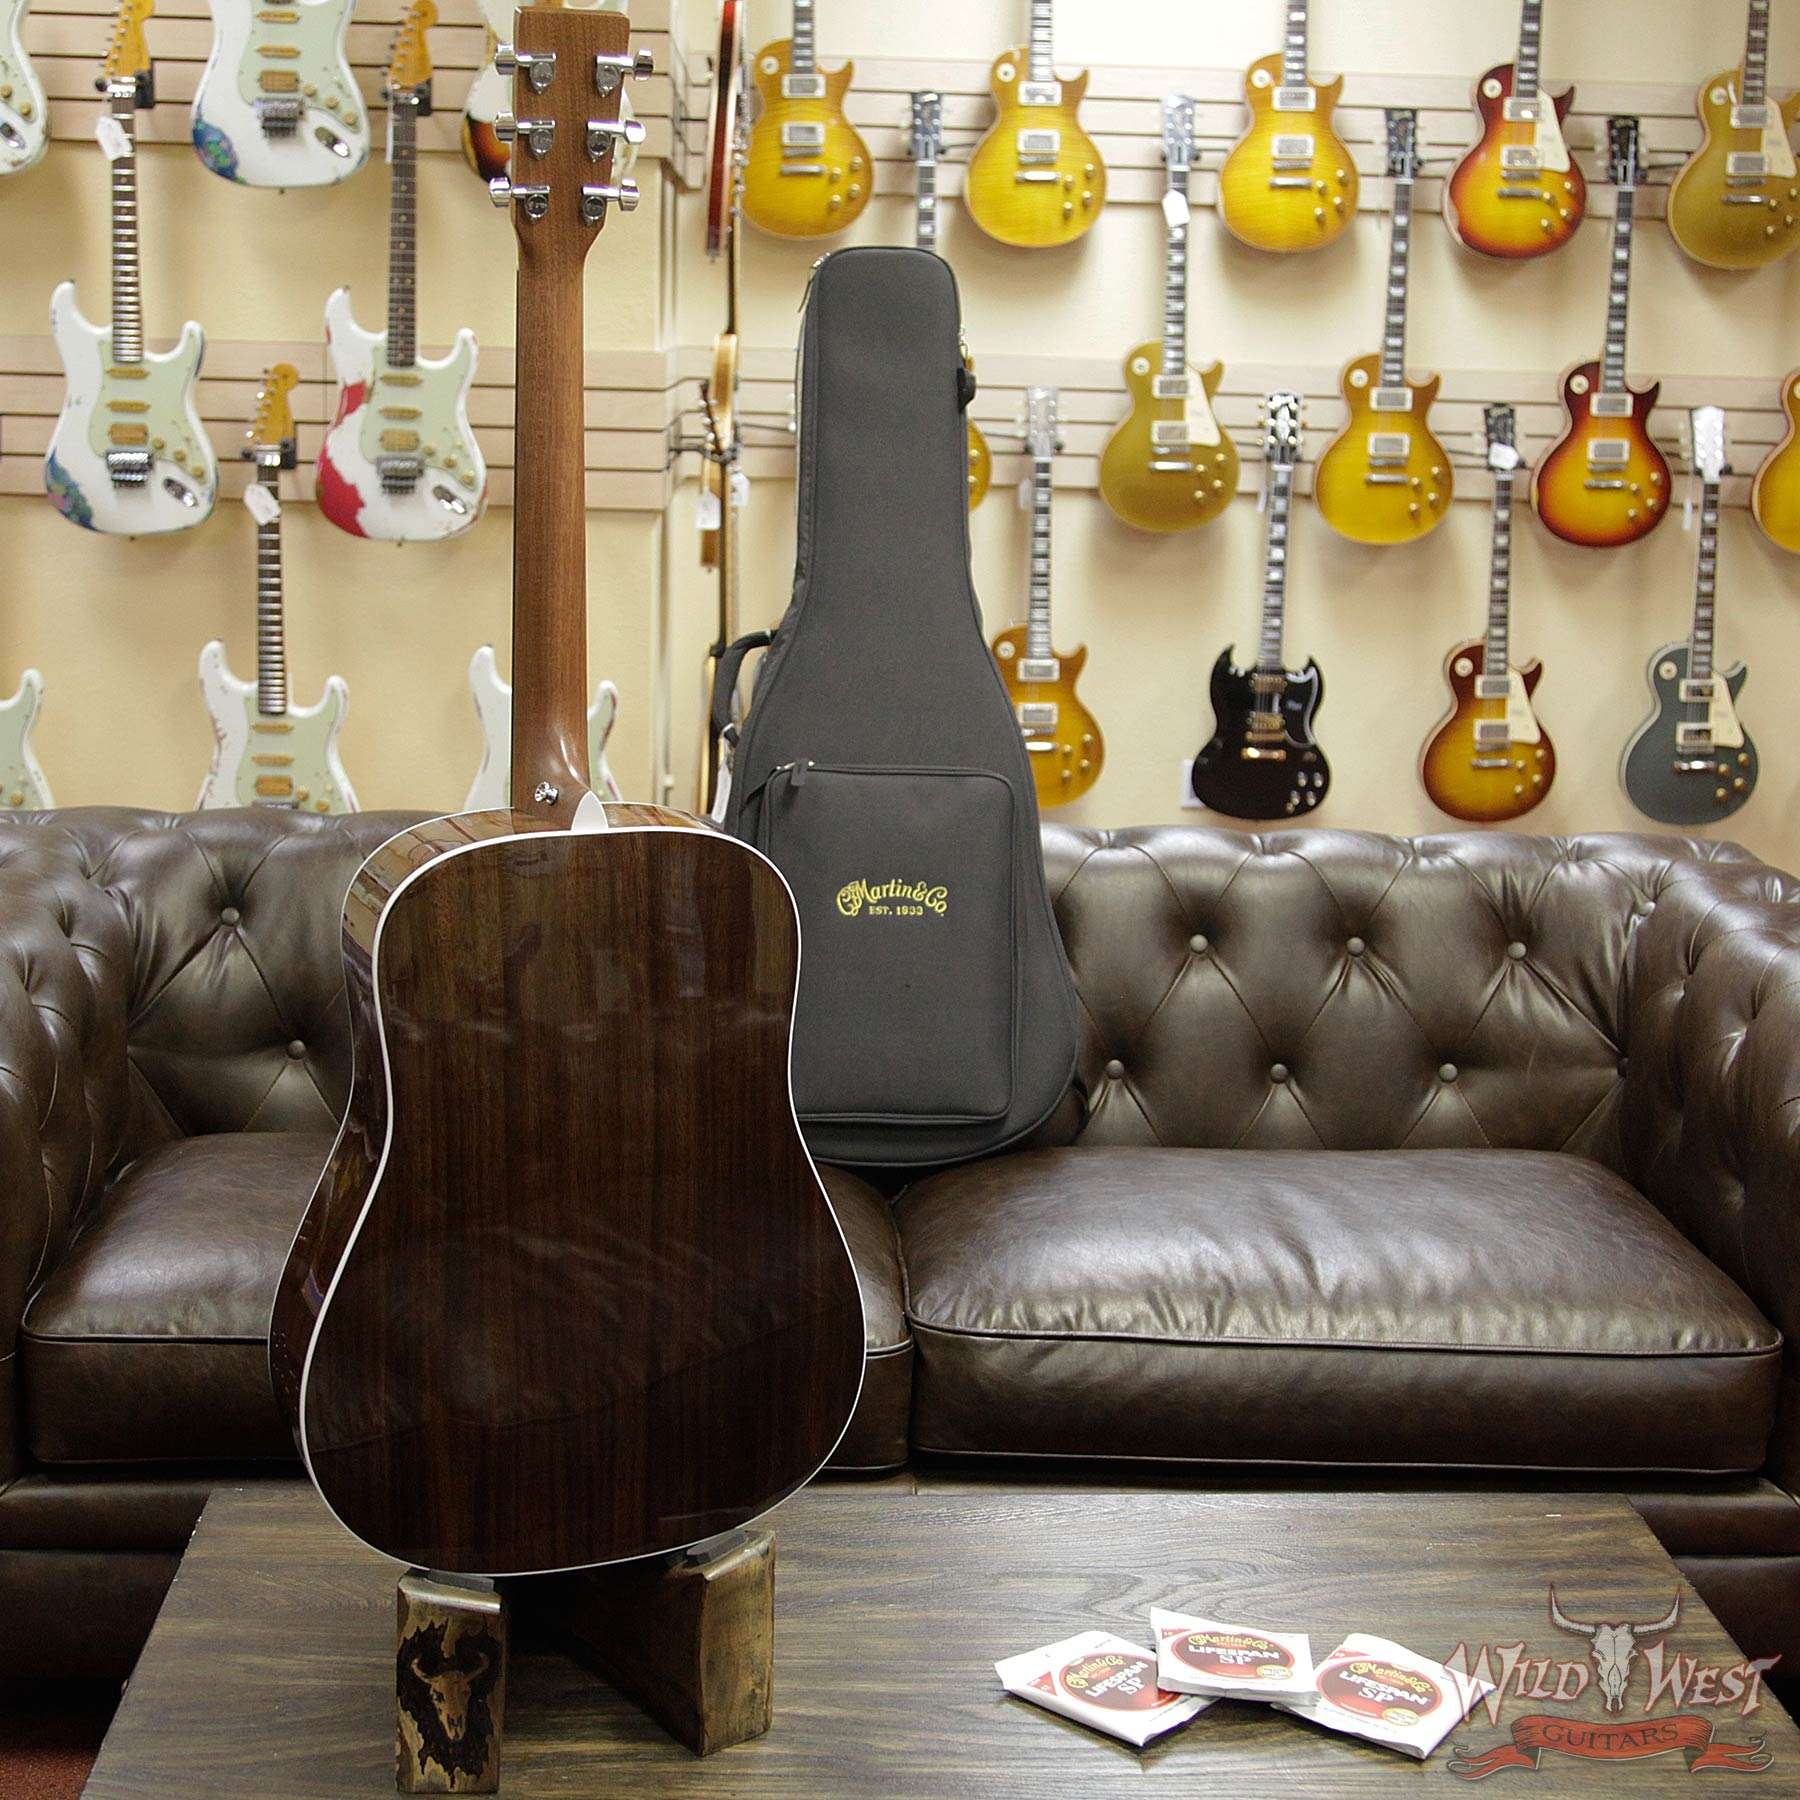 martin road series d 13e electric acoustic guitar w 3 sets of lifespan sp strings wild west. Black Bedroom Furniture Sets. Home Design Ideas